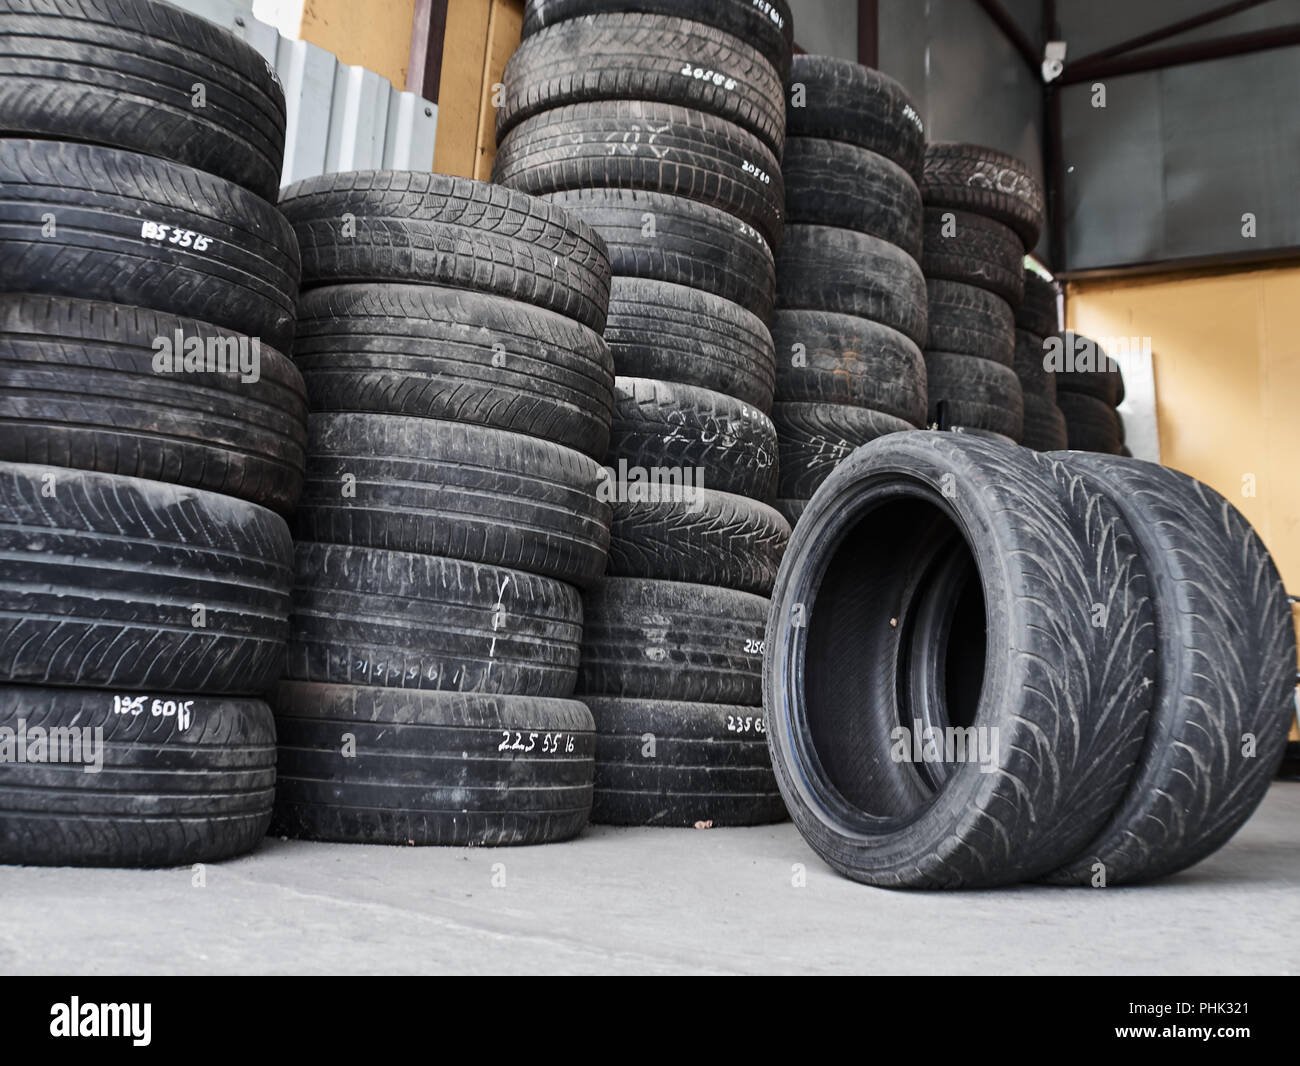 Used car tires stacked in piles at tire fitting service. Wheels for repair shop. Car service concepr - Stock Image